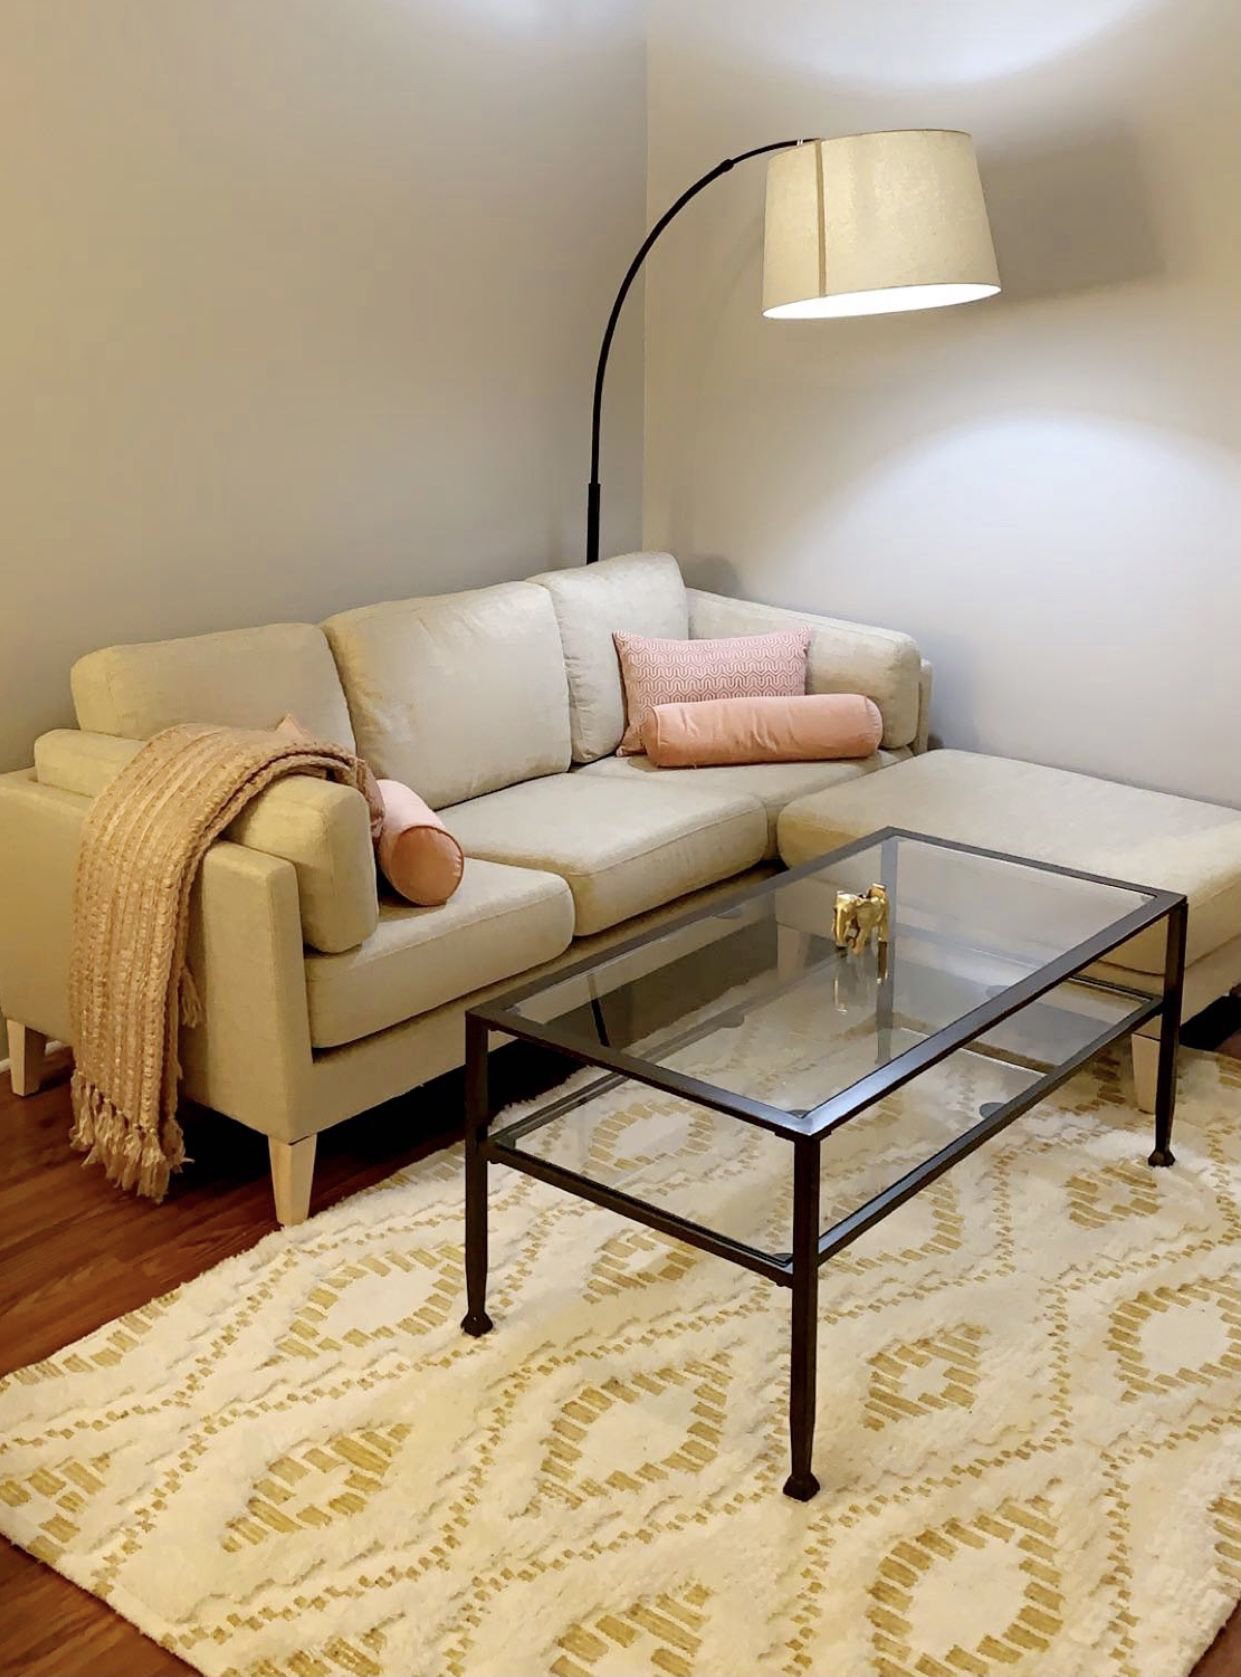 Sofa/couch with matching ottoman